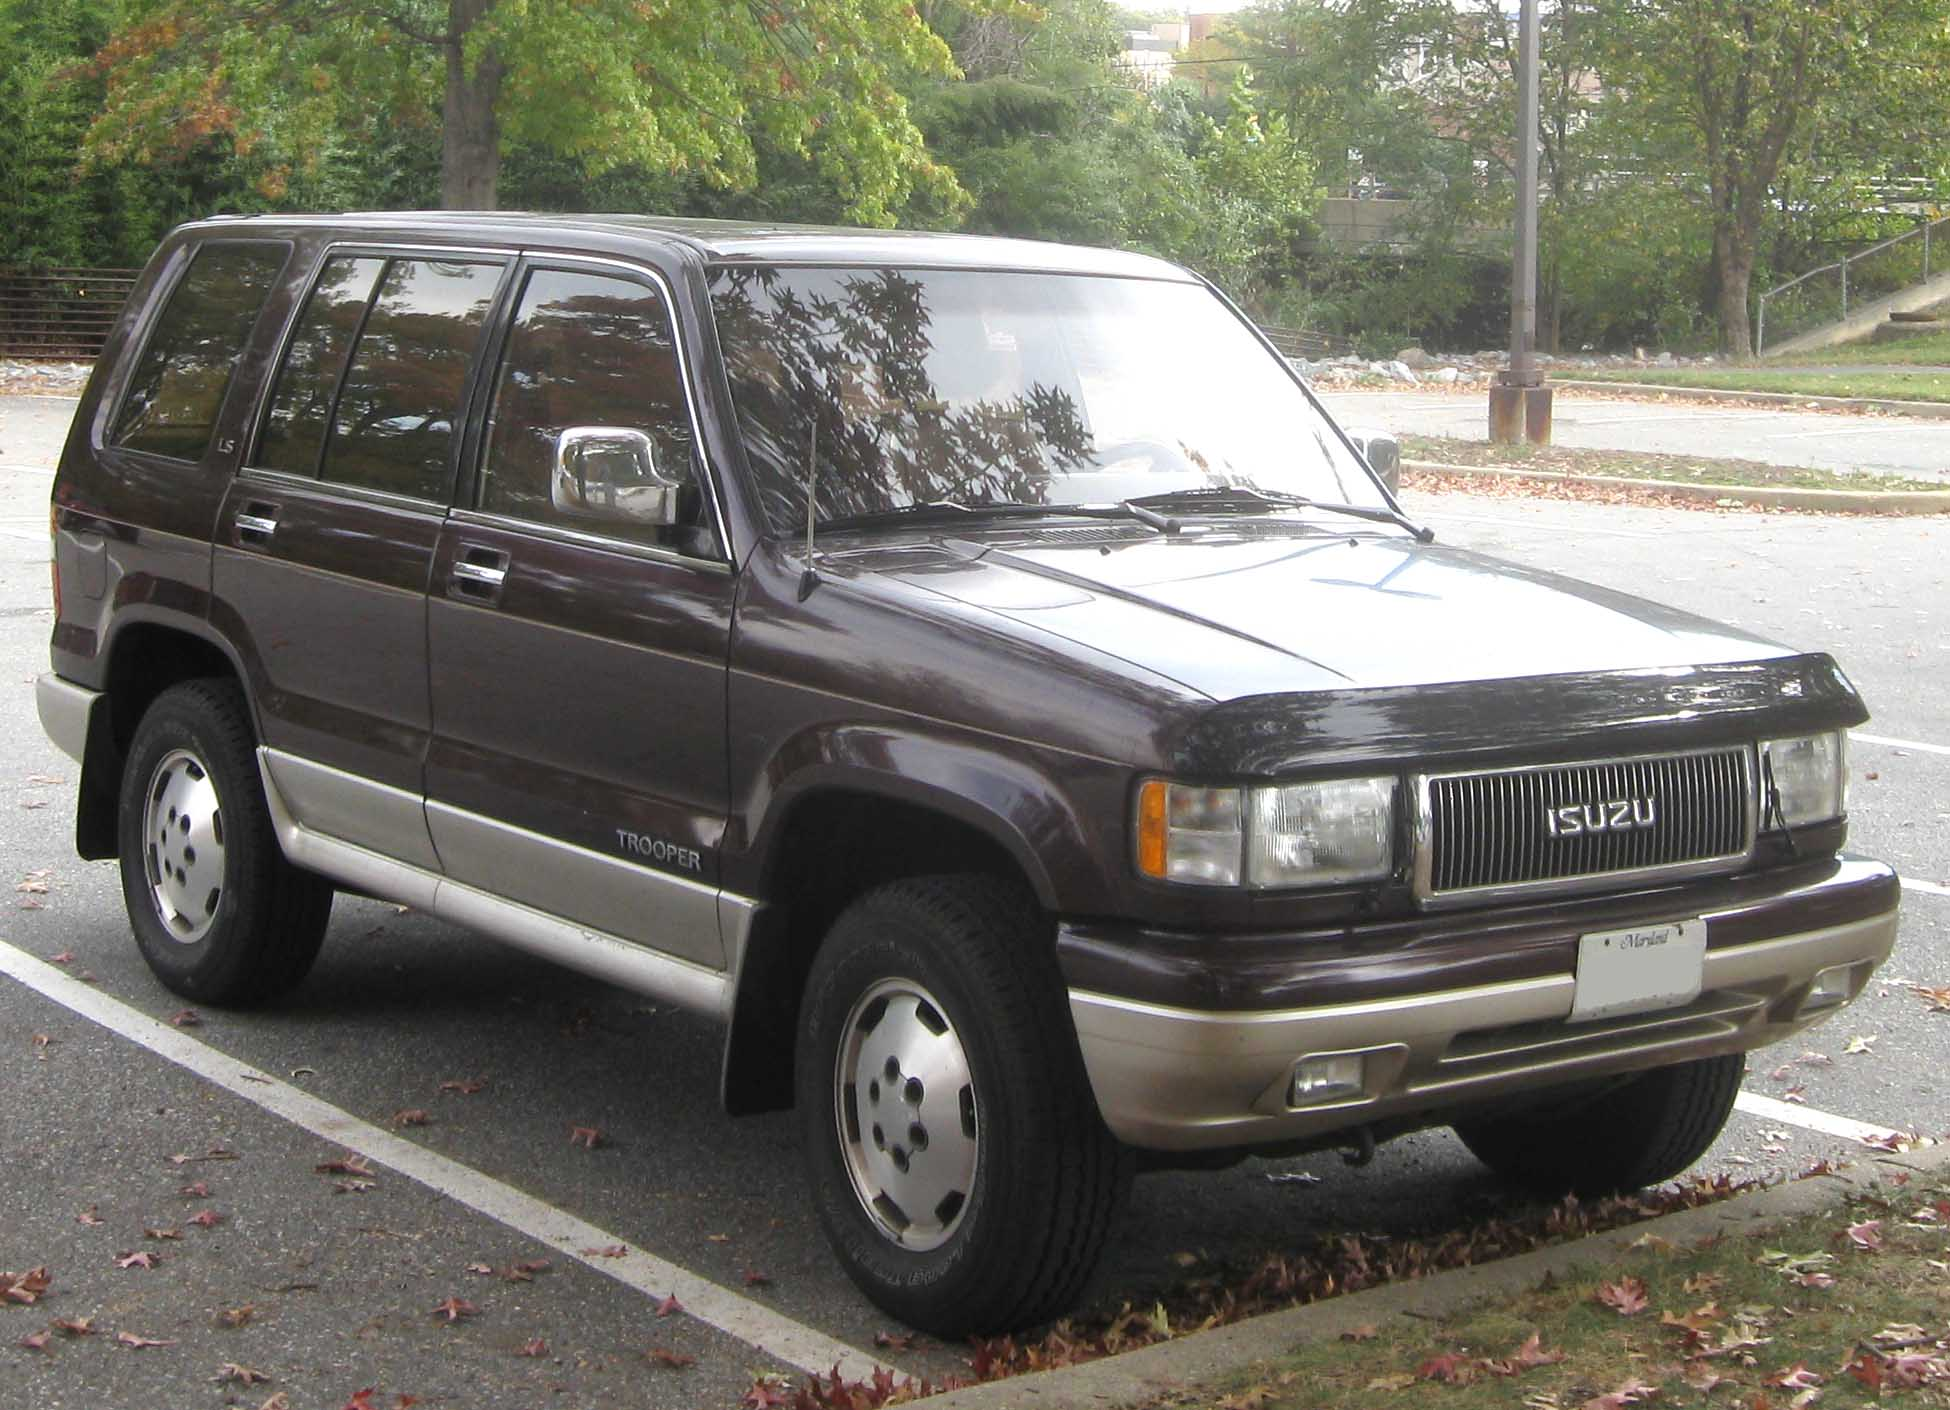 isuzu trooper images #3